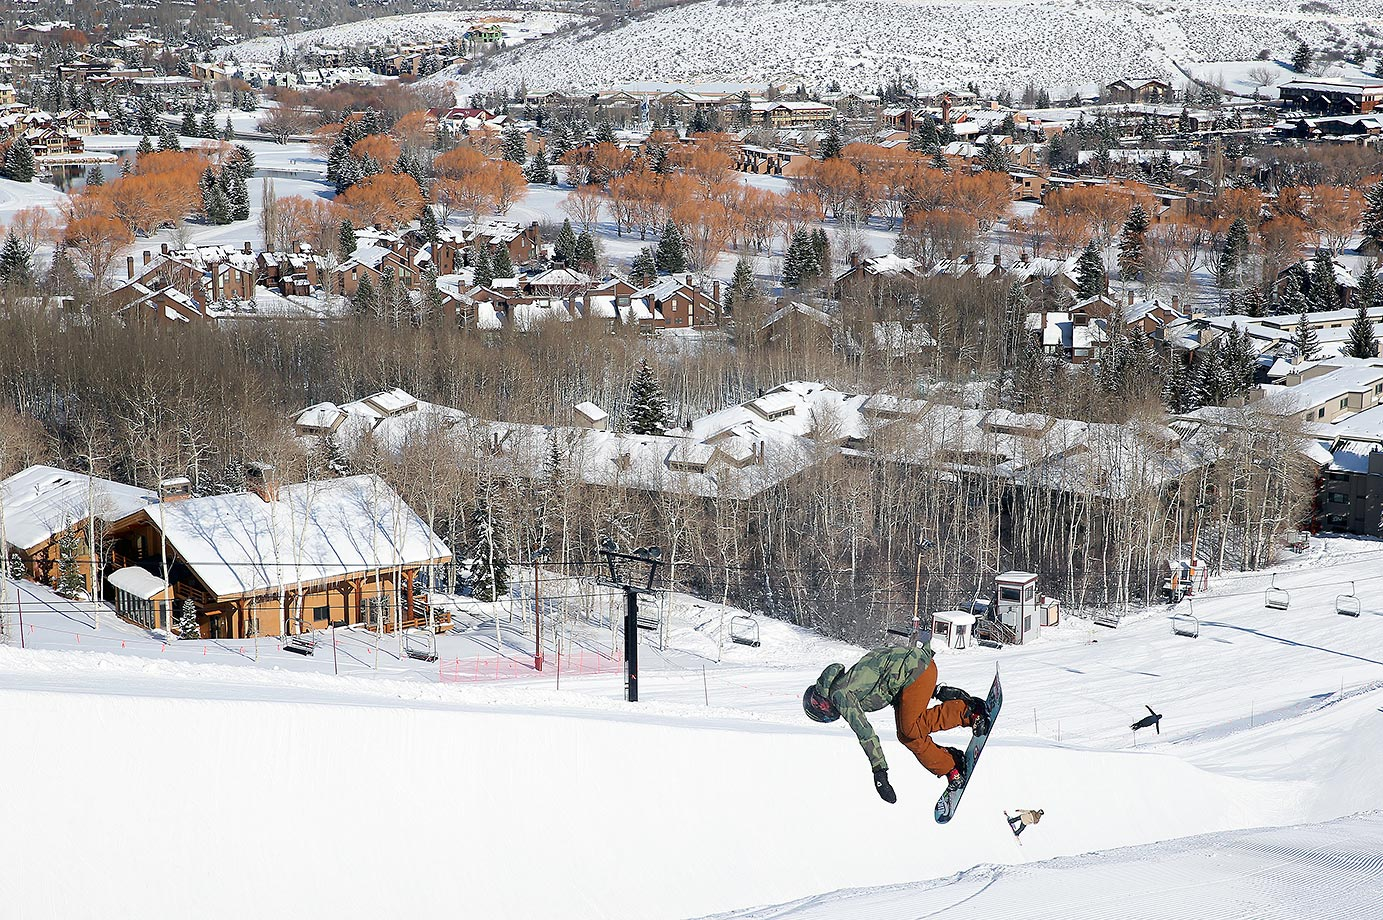 Chloe Kim drops into the half pipe at Park City Resort.